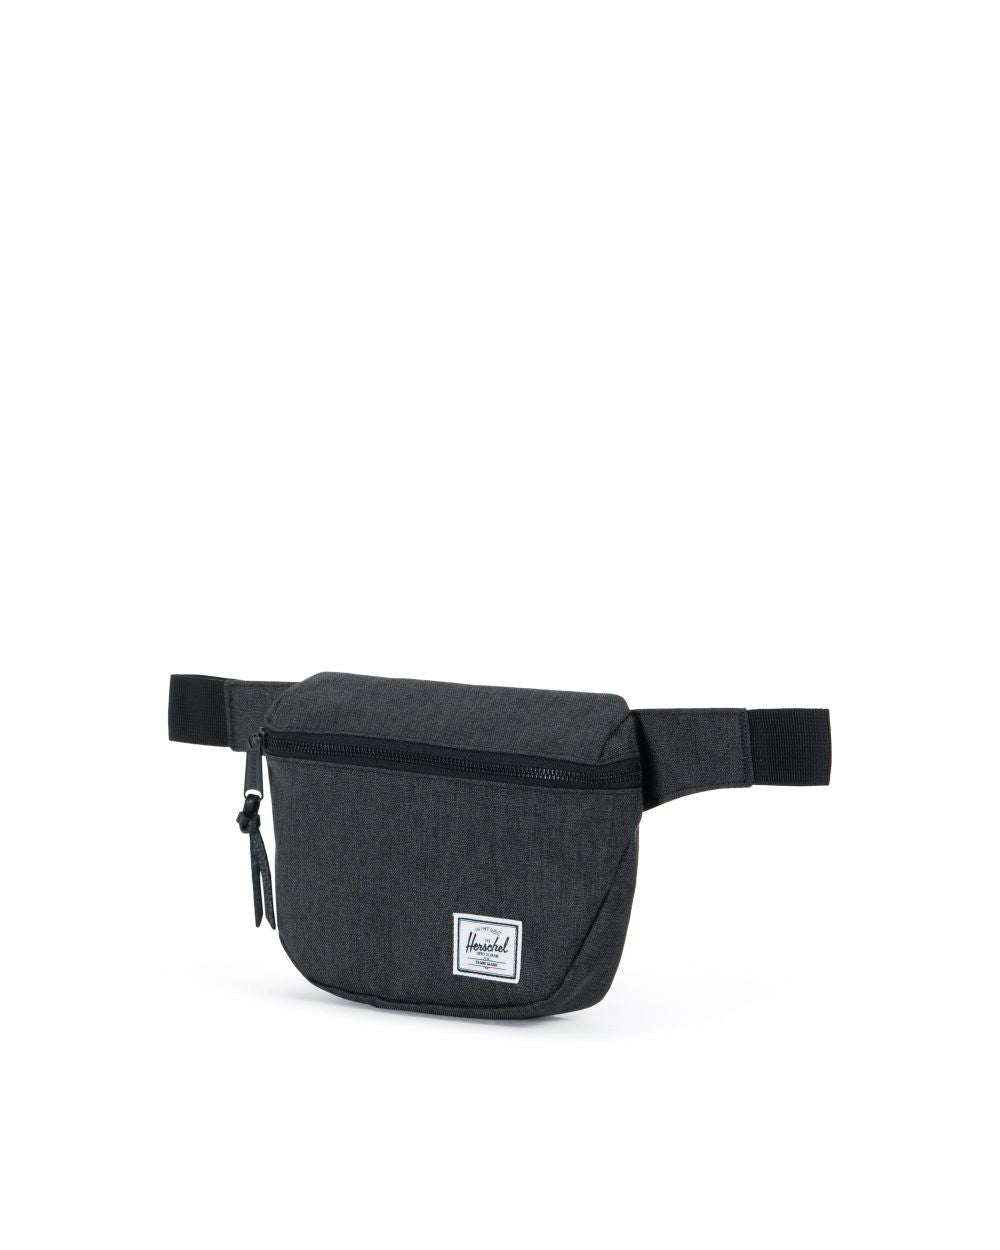 HERSCHEL - FIFTEEN HIP PACK IN BLACK CROSSHATCH